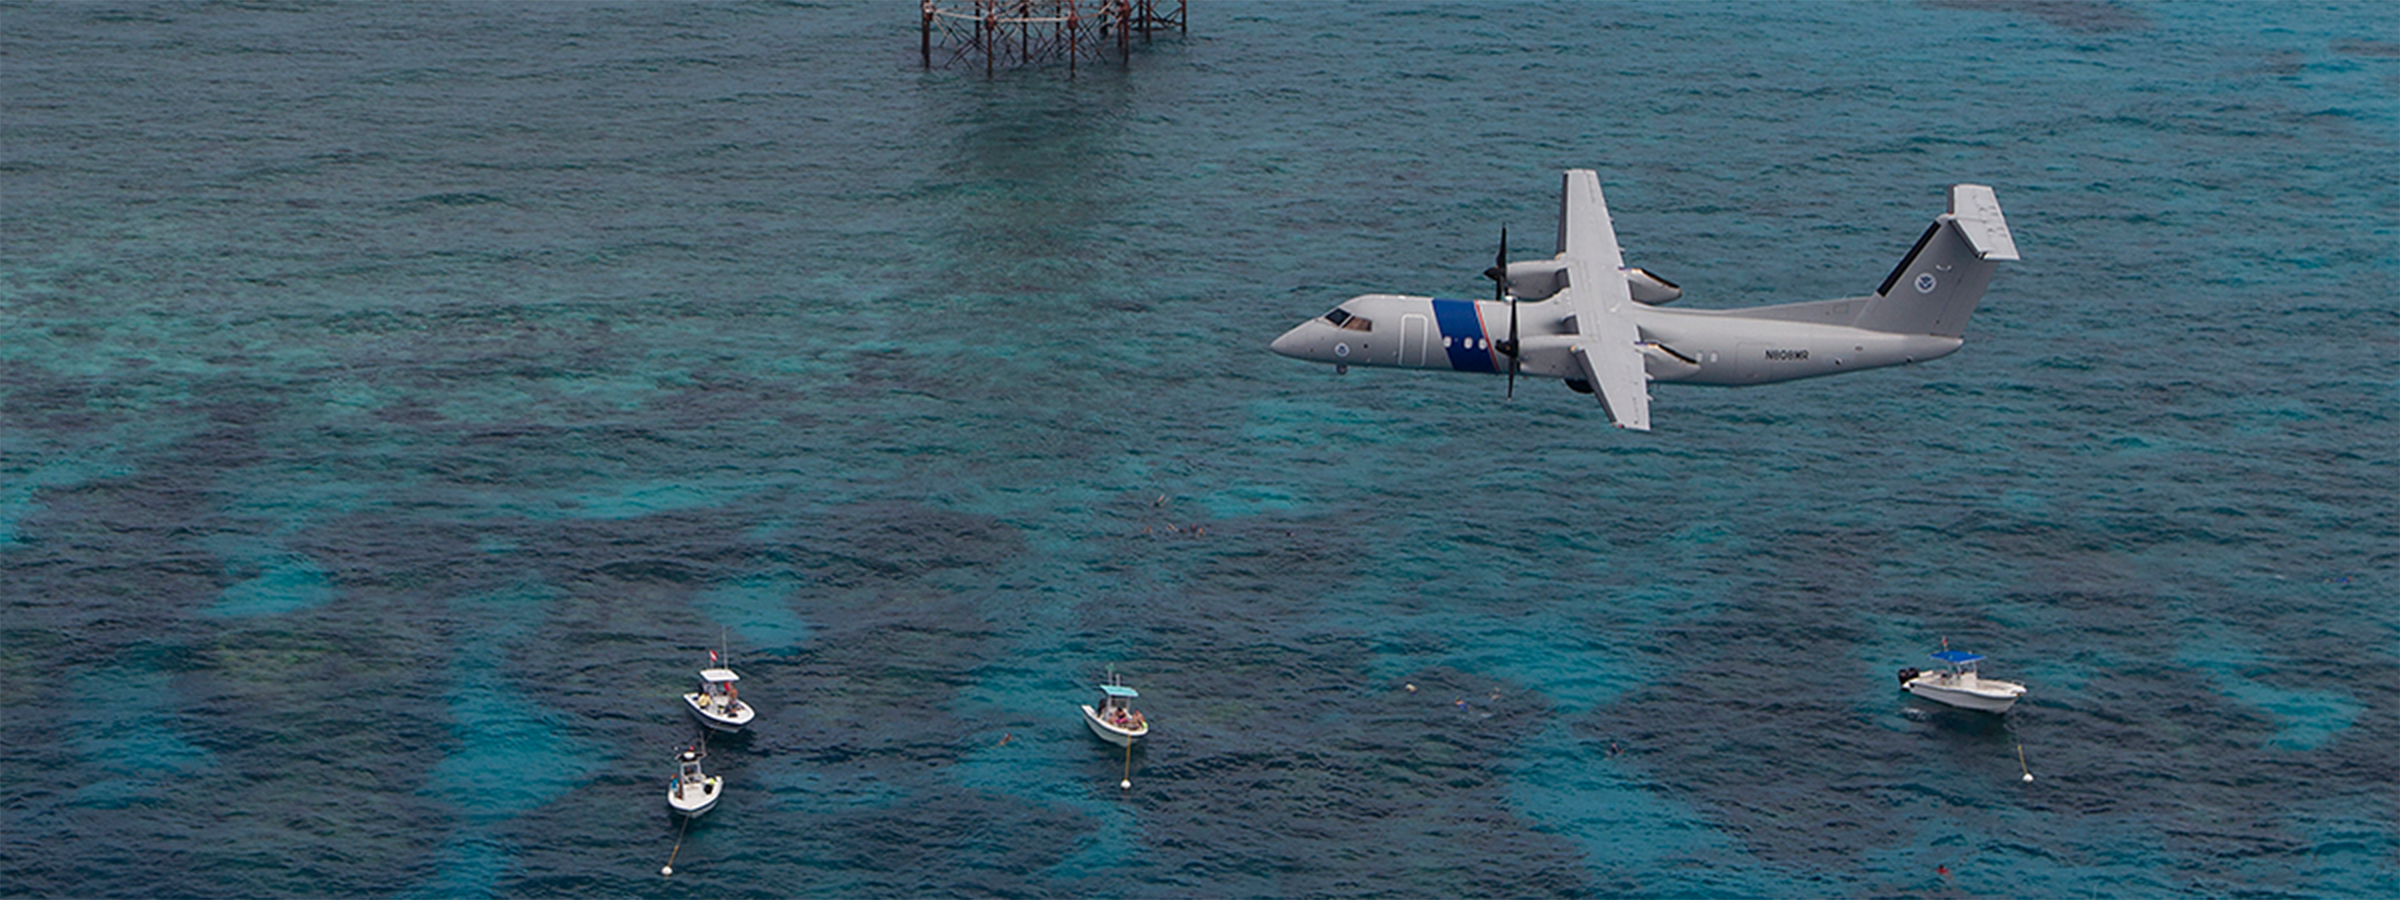 An Air and Marine Operations DHC-8 maritime patrol aircraft crew conducts operations in south Florida.